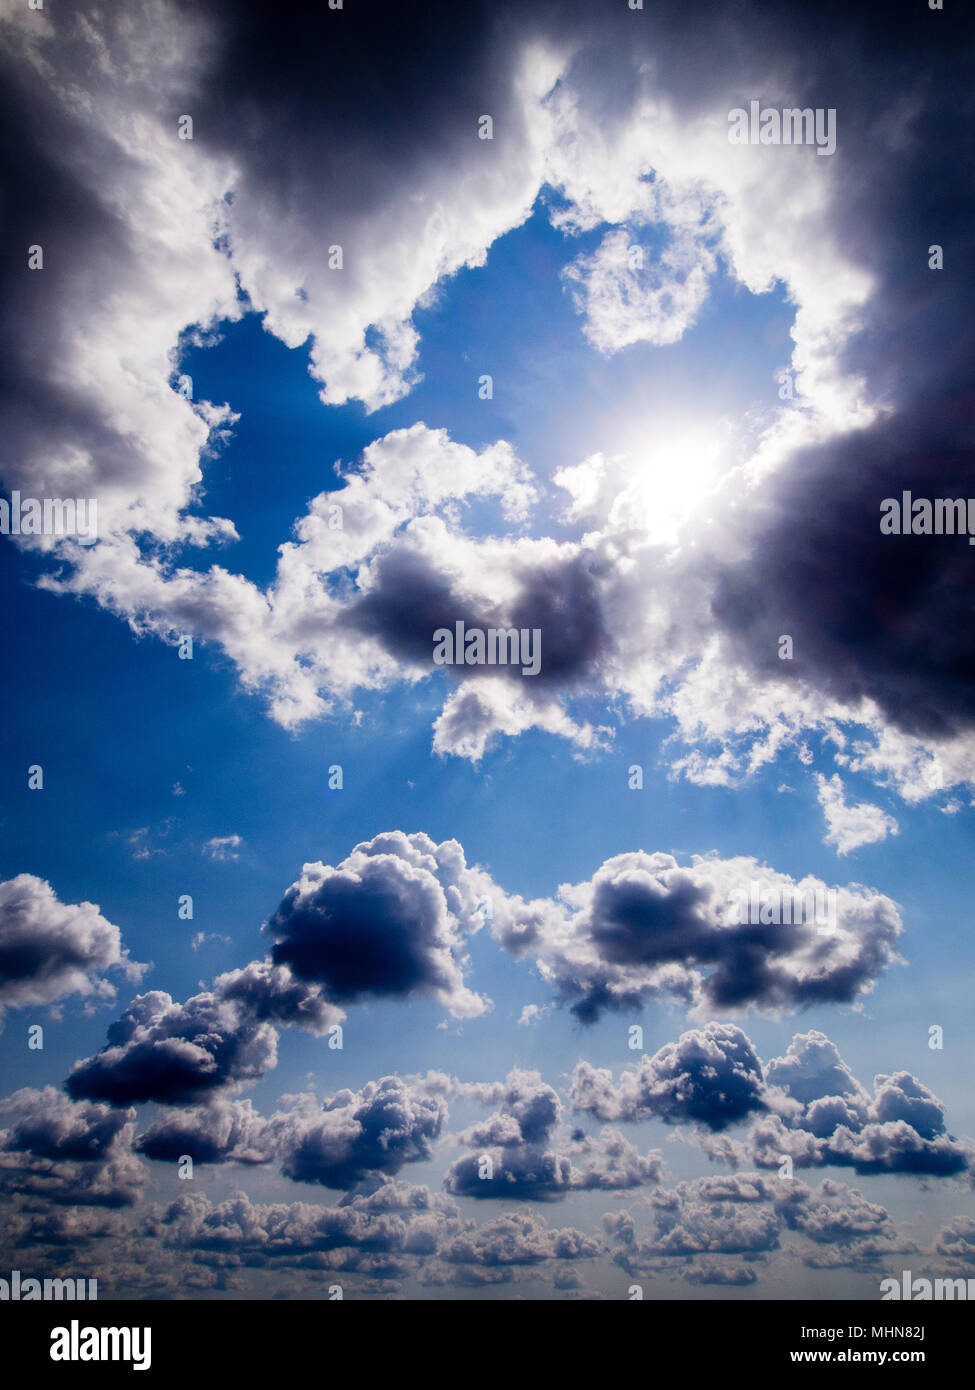 Blue sky with white fluffy clouds and sun - Stock Image